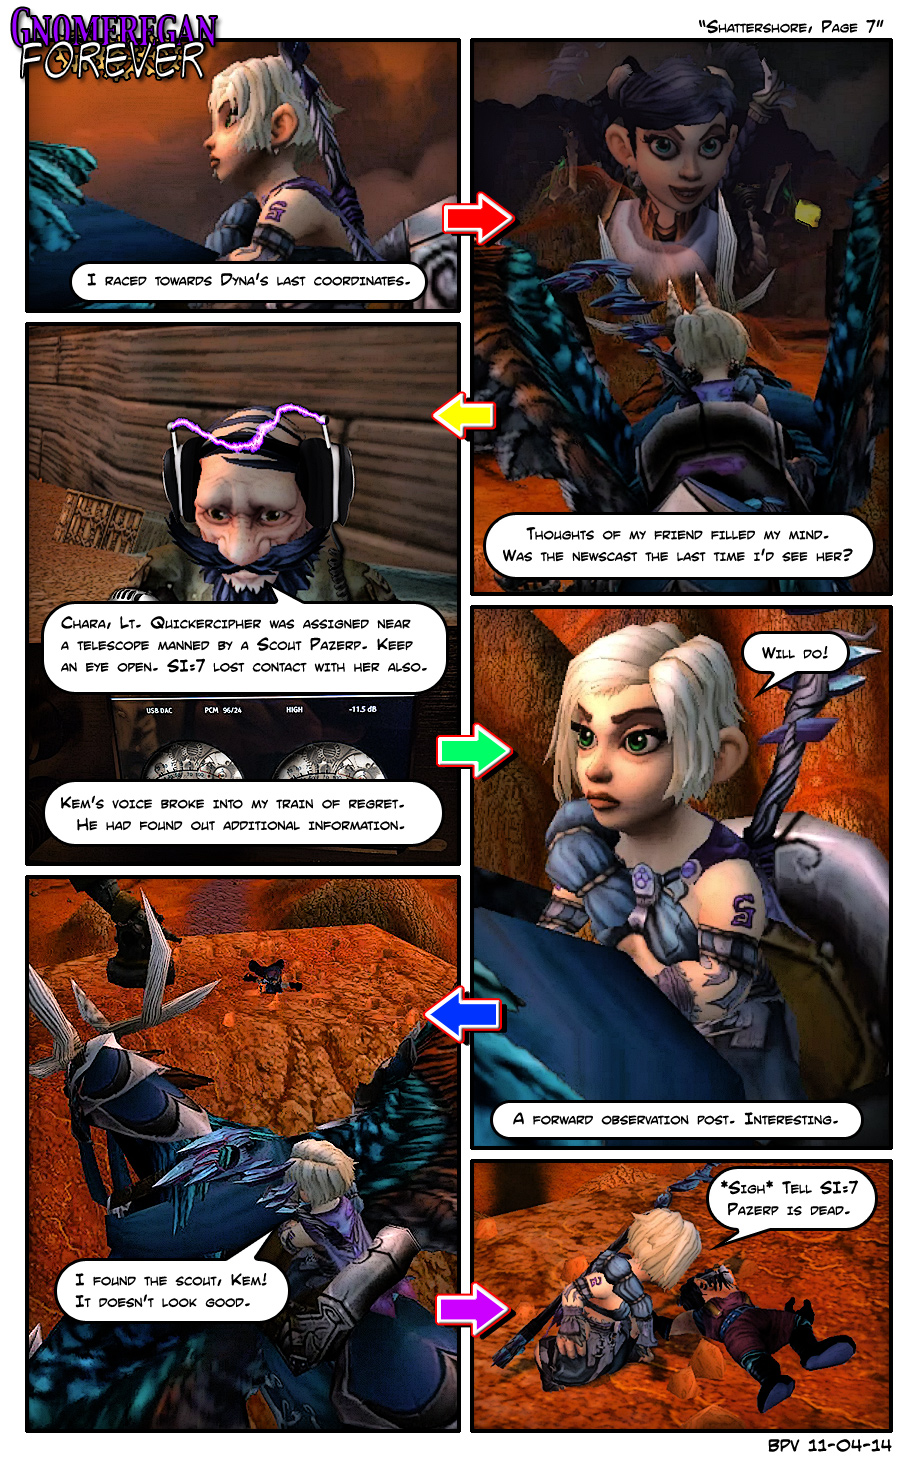 Shattershore, Page 7